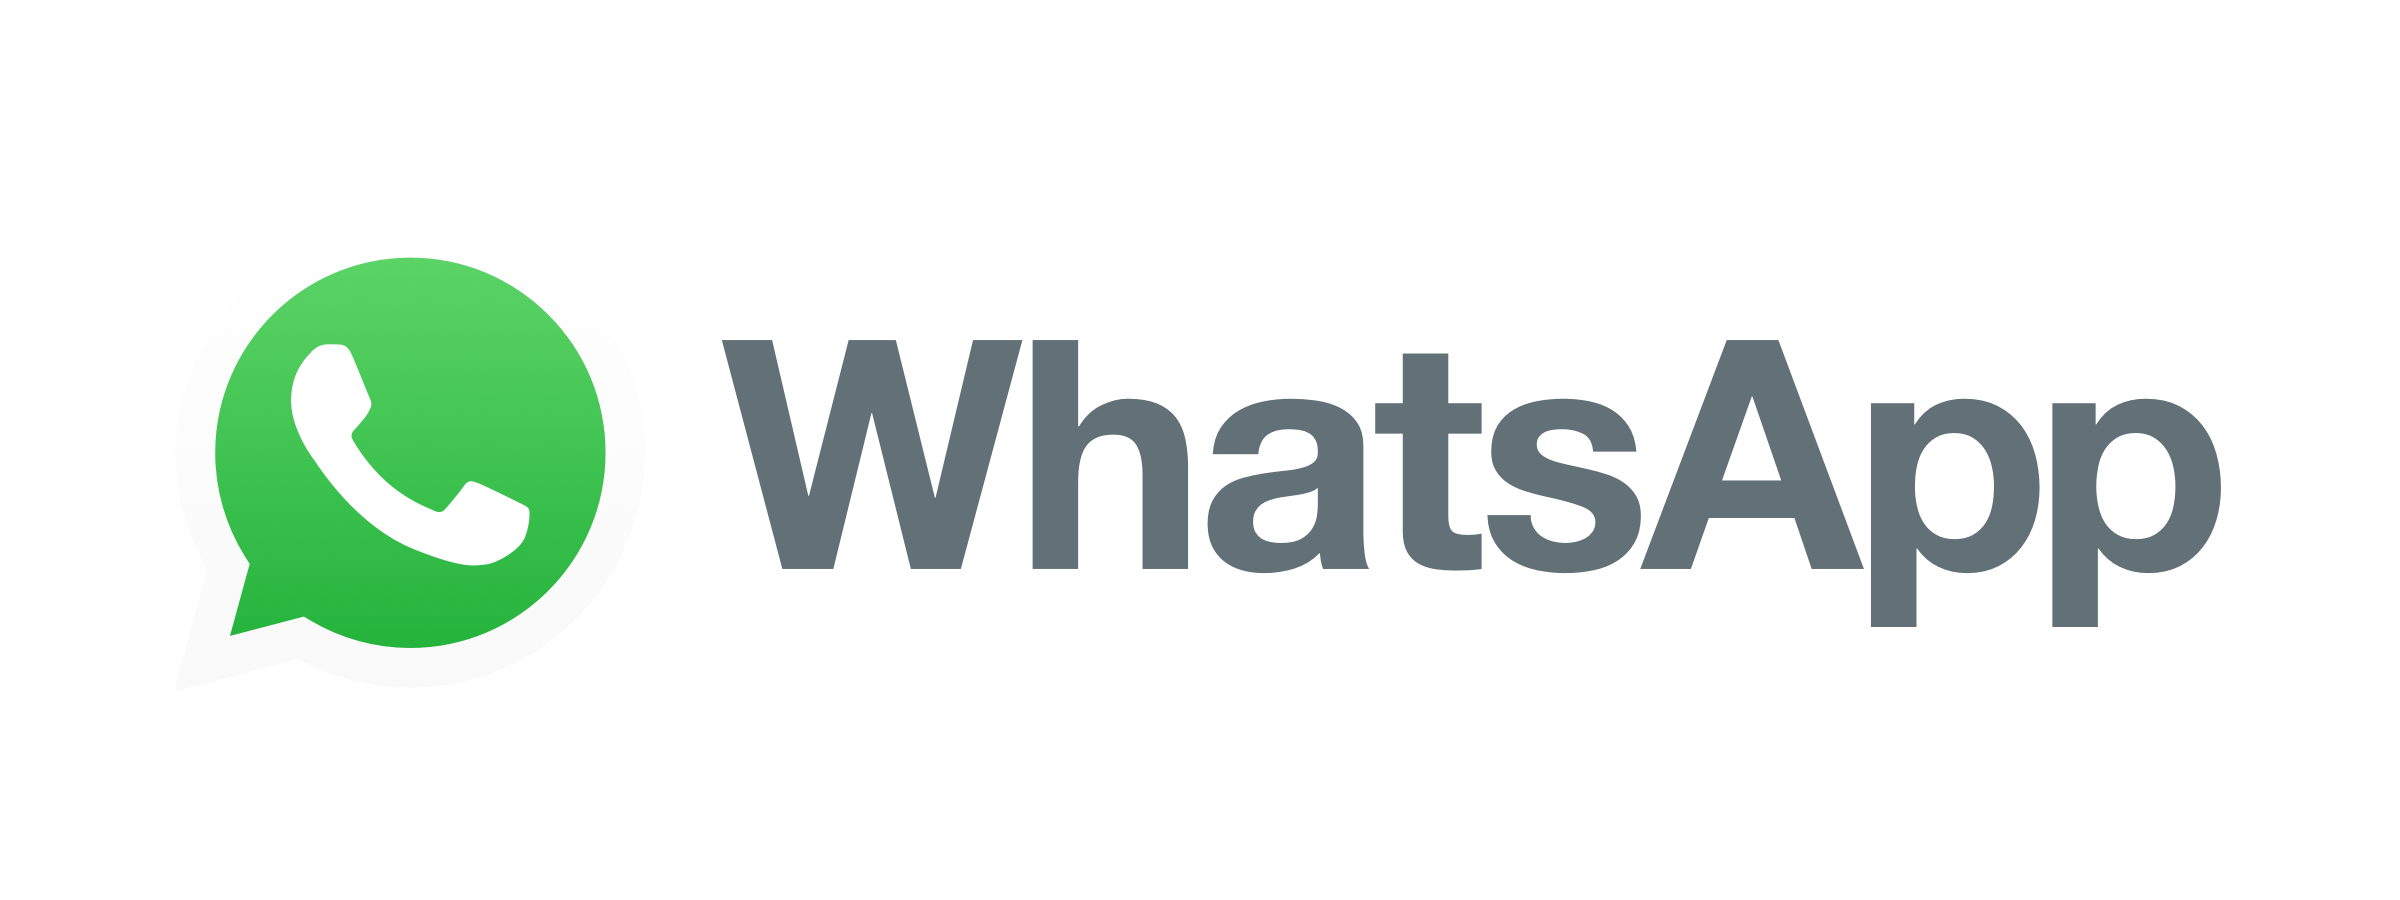 whatsapp-logo-full